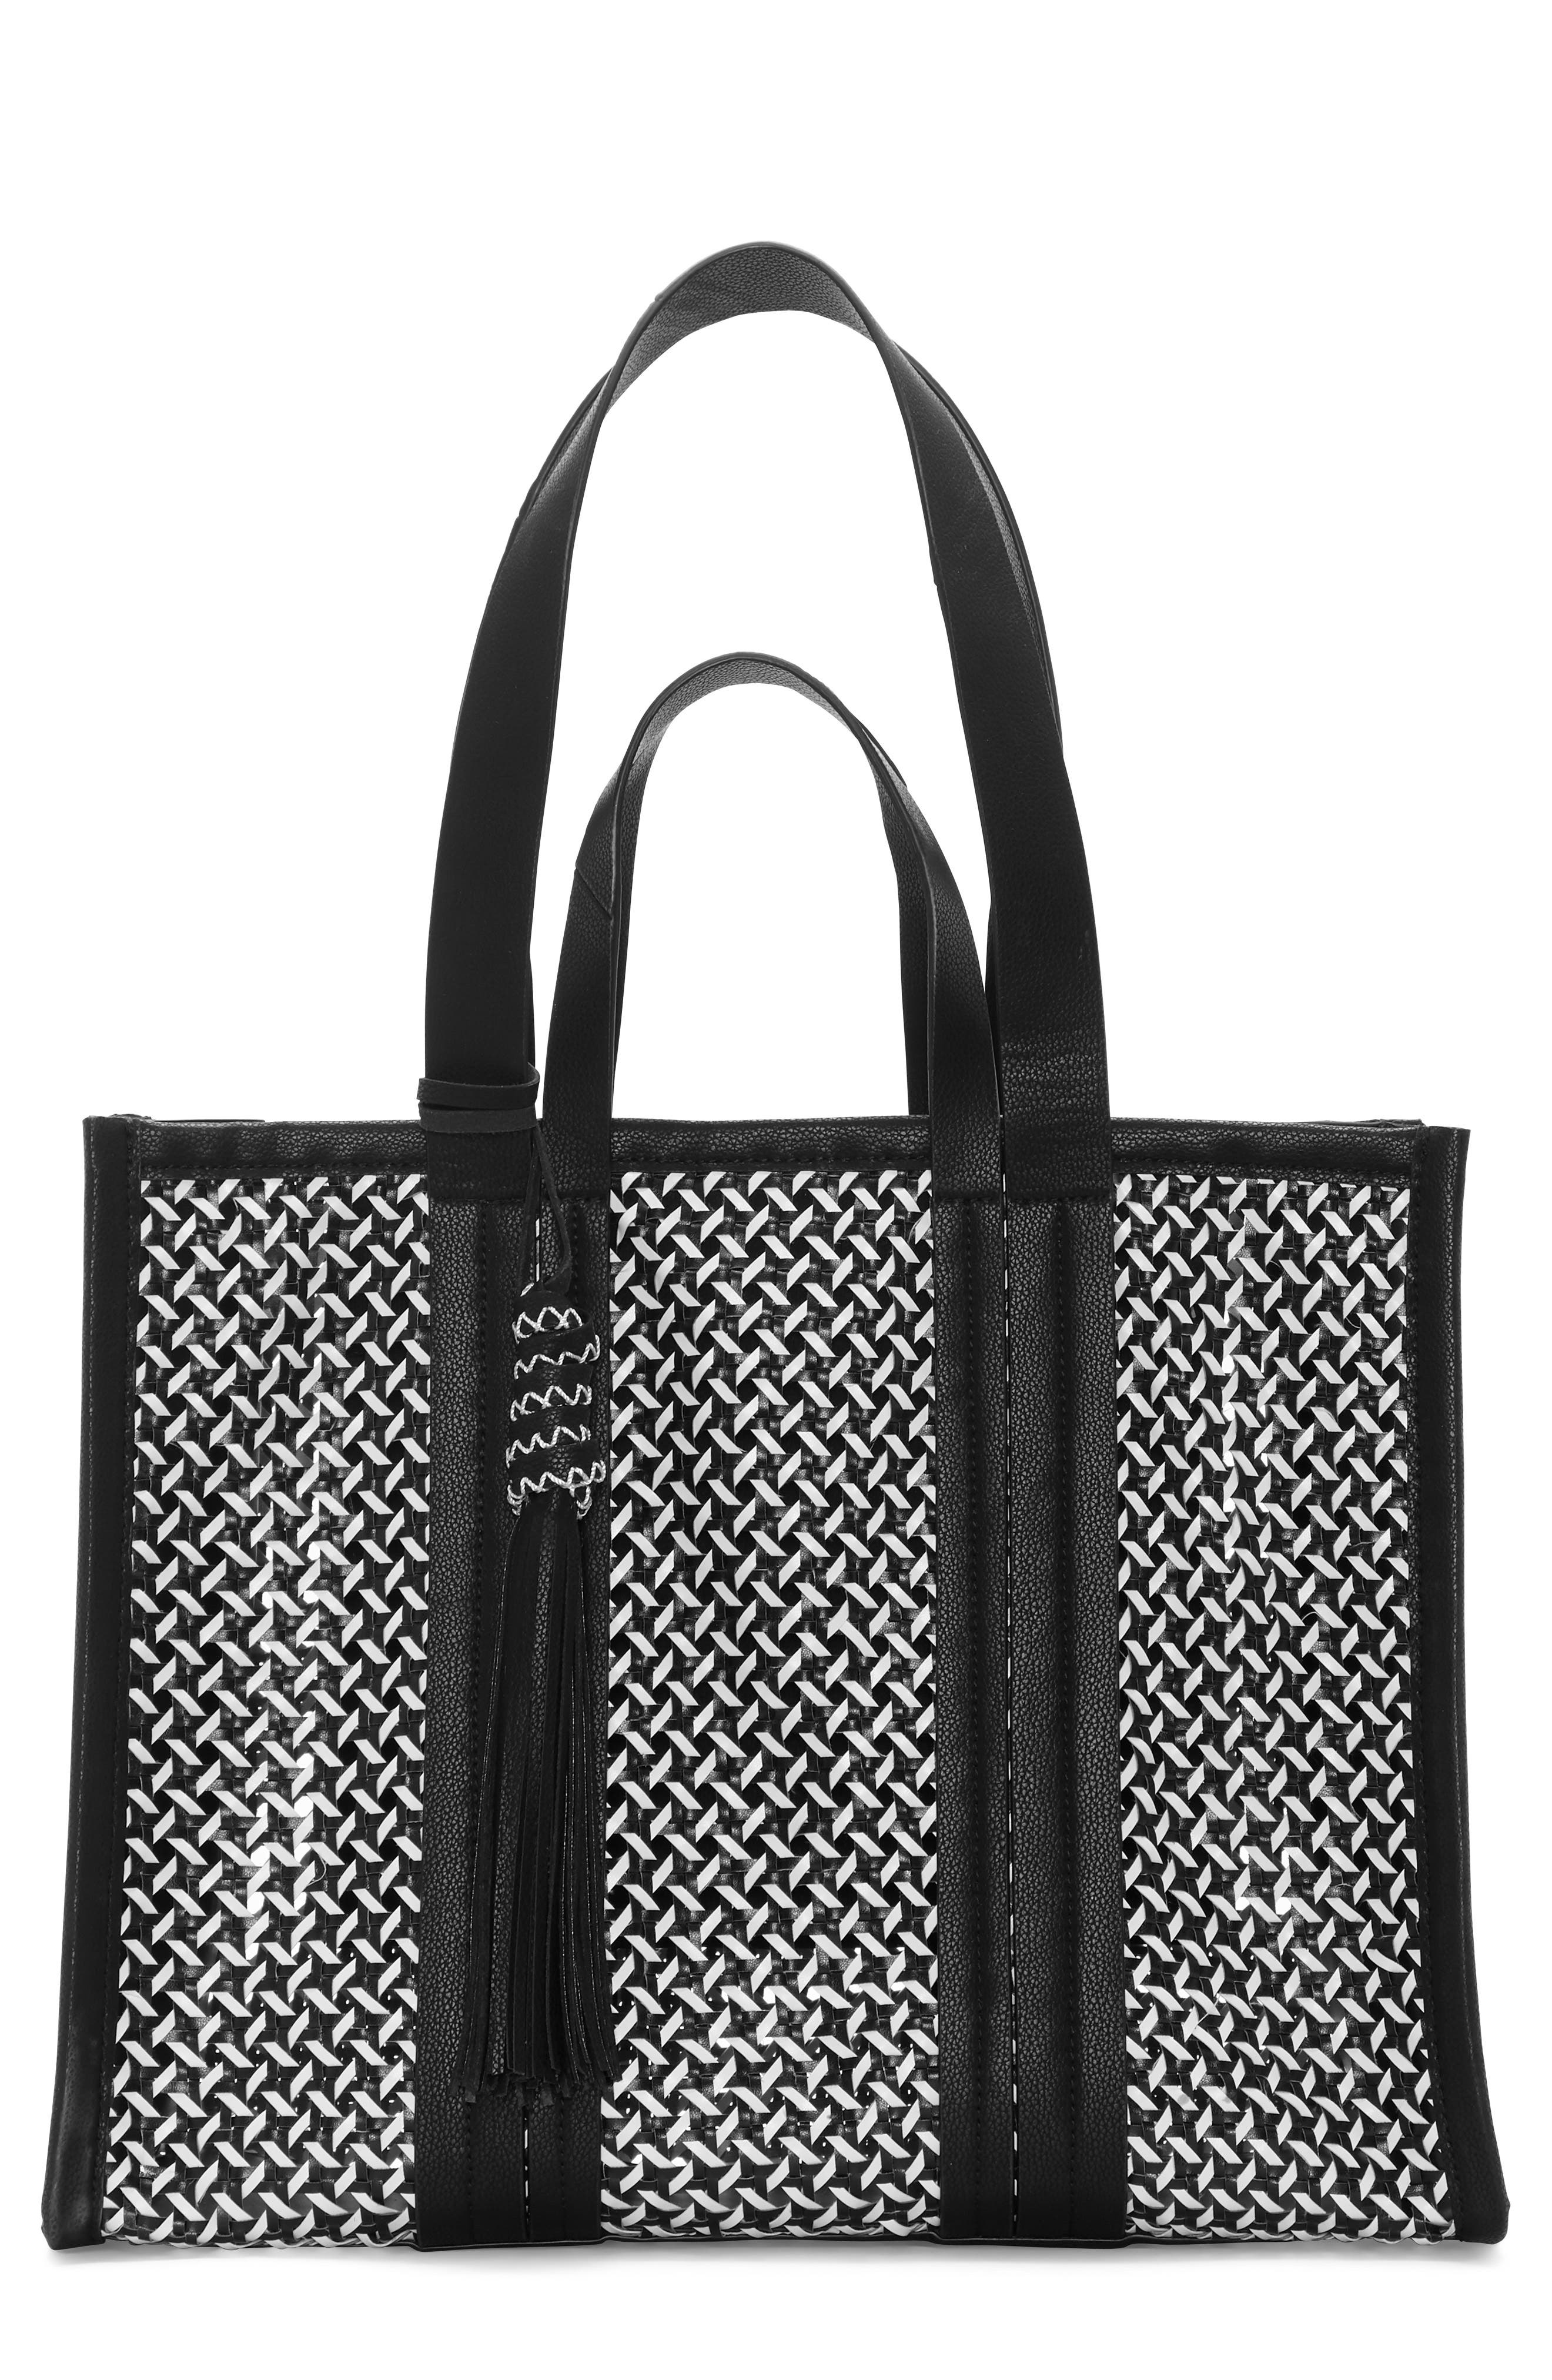 VINCE CAMUTO, Indra Woven Rattan & Leather Tote, Main thumbnail 1, color, 001